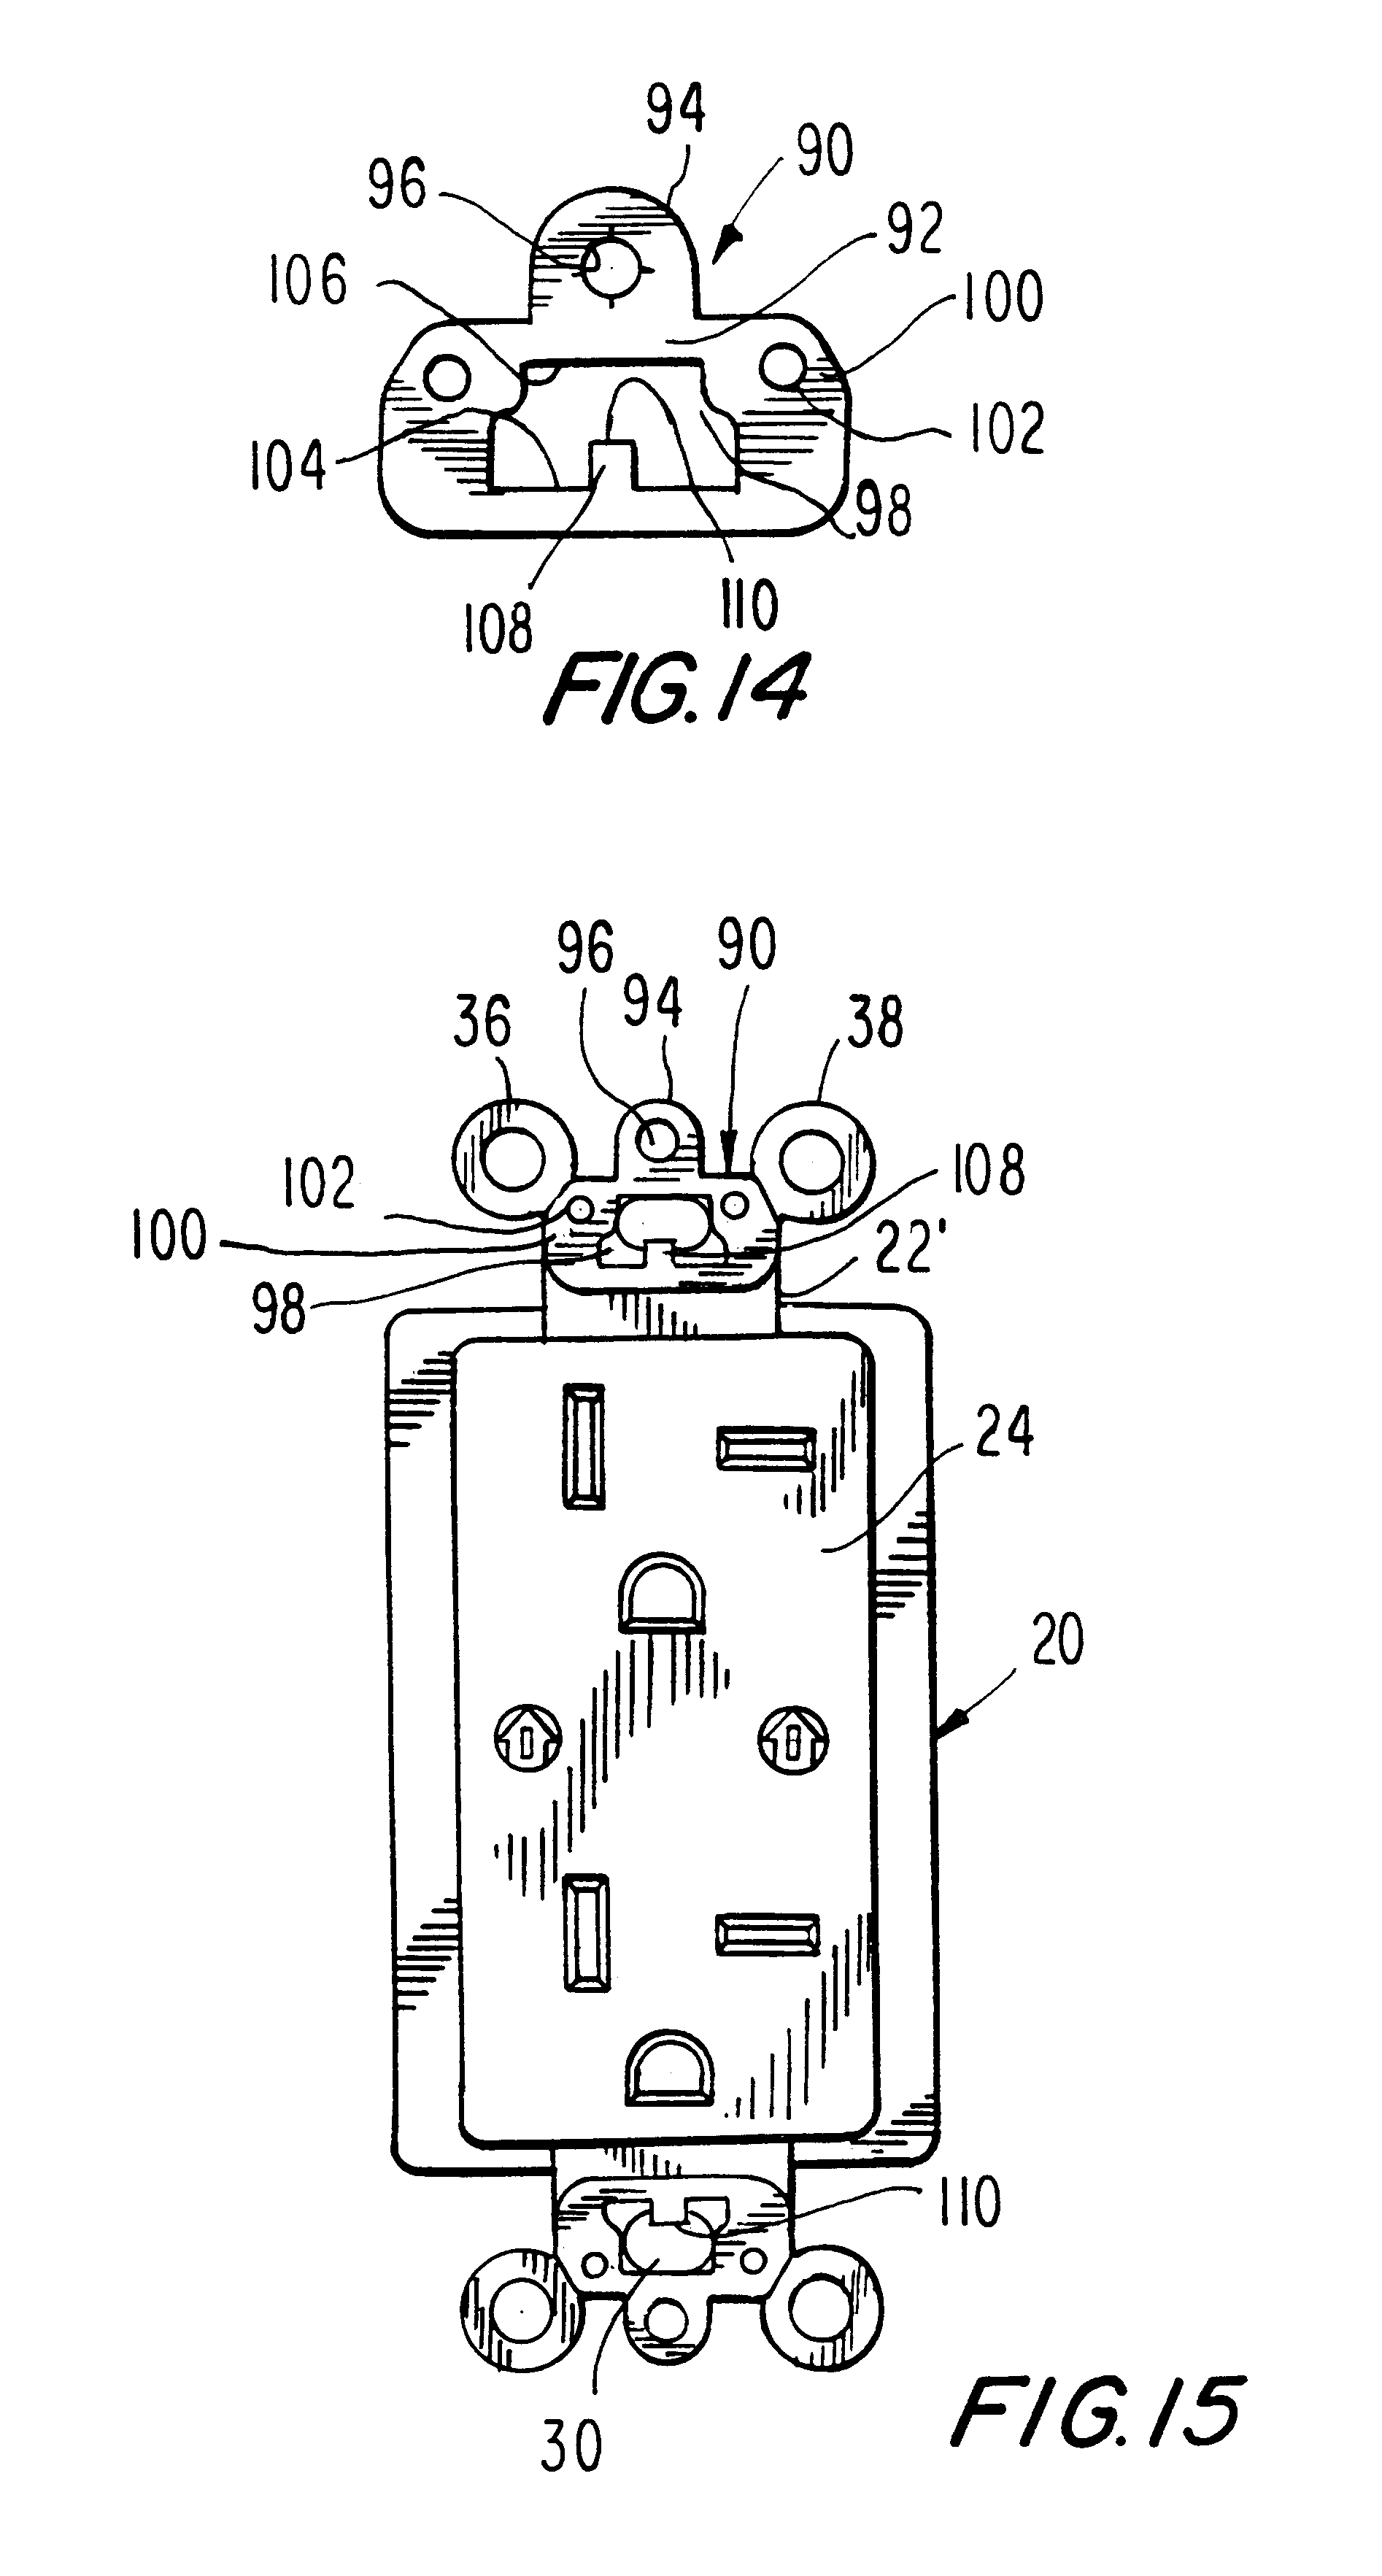 hight resolution of brevet us6184466 wallplate retention device google brevets leviton phone jack wiring also with patent us20110203828 wiring device